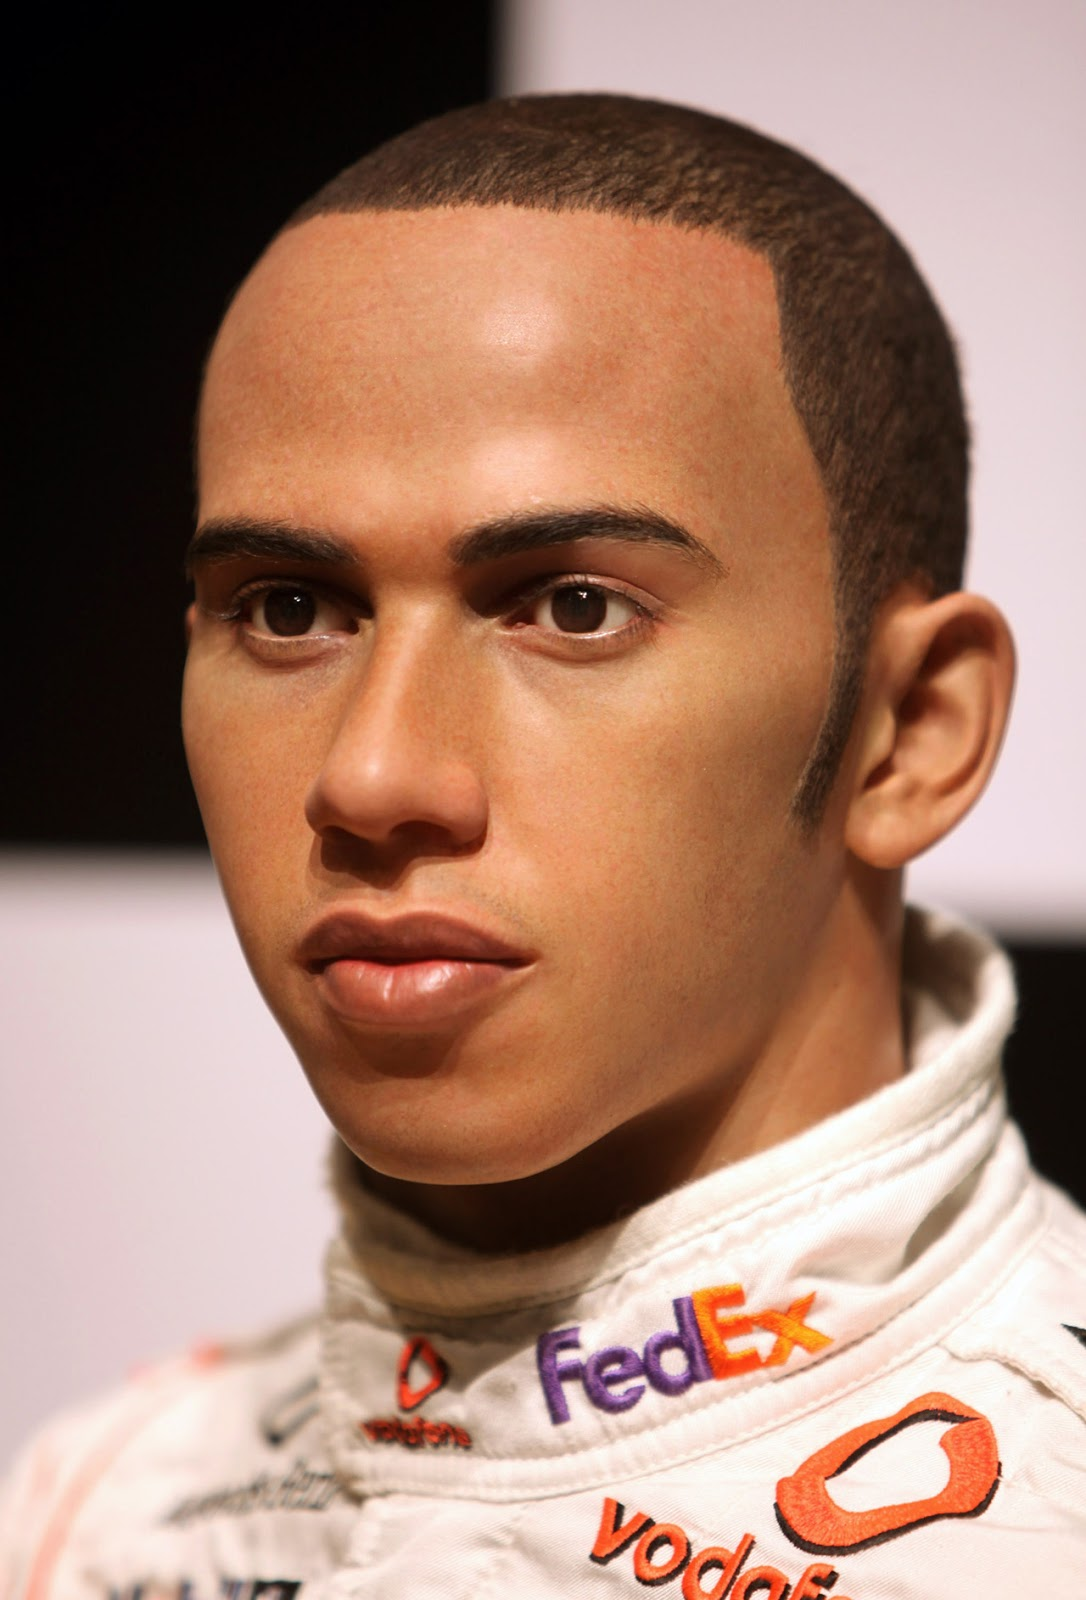 Lewis Hamilton Hd Wallpapers High Definition Free